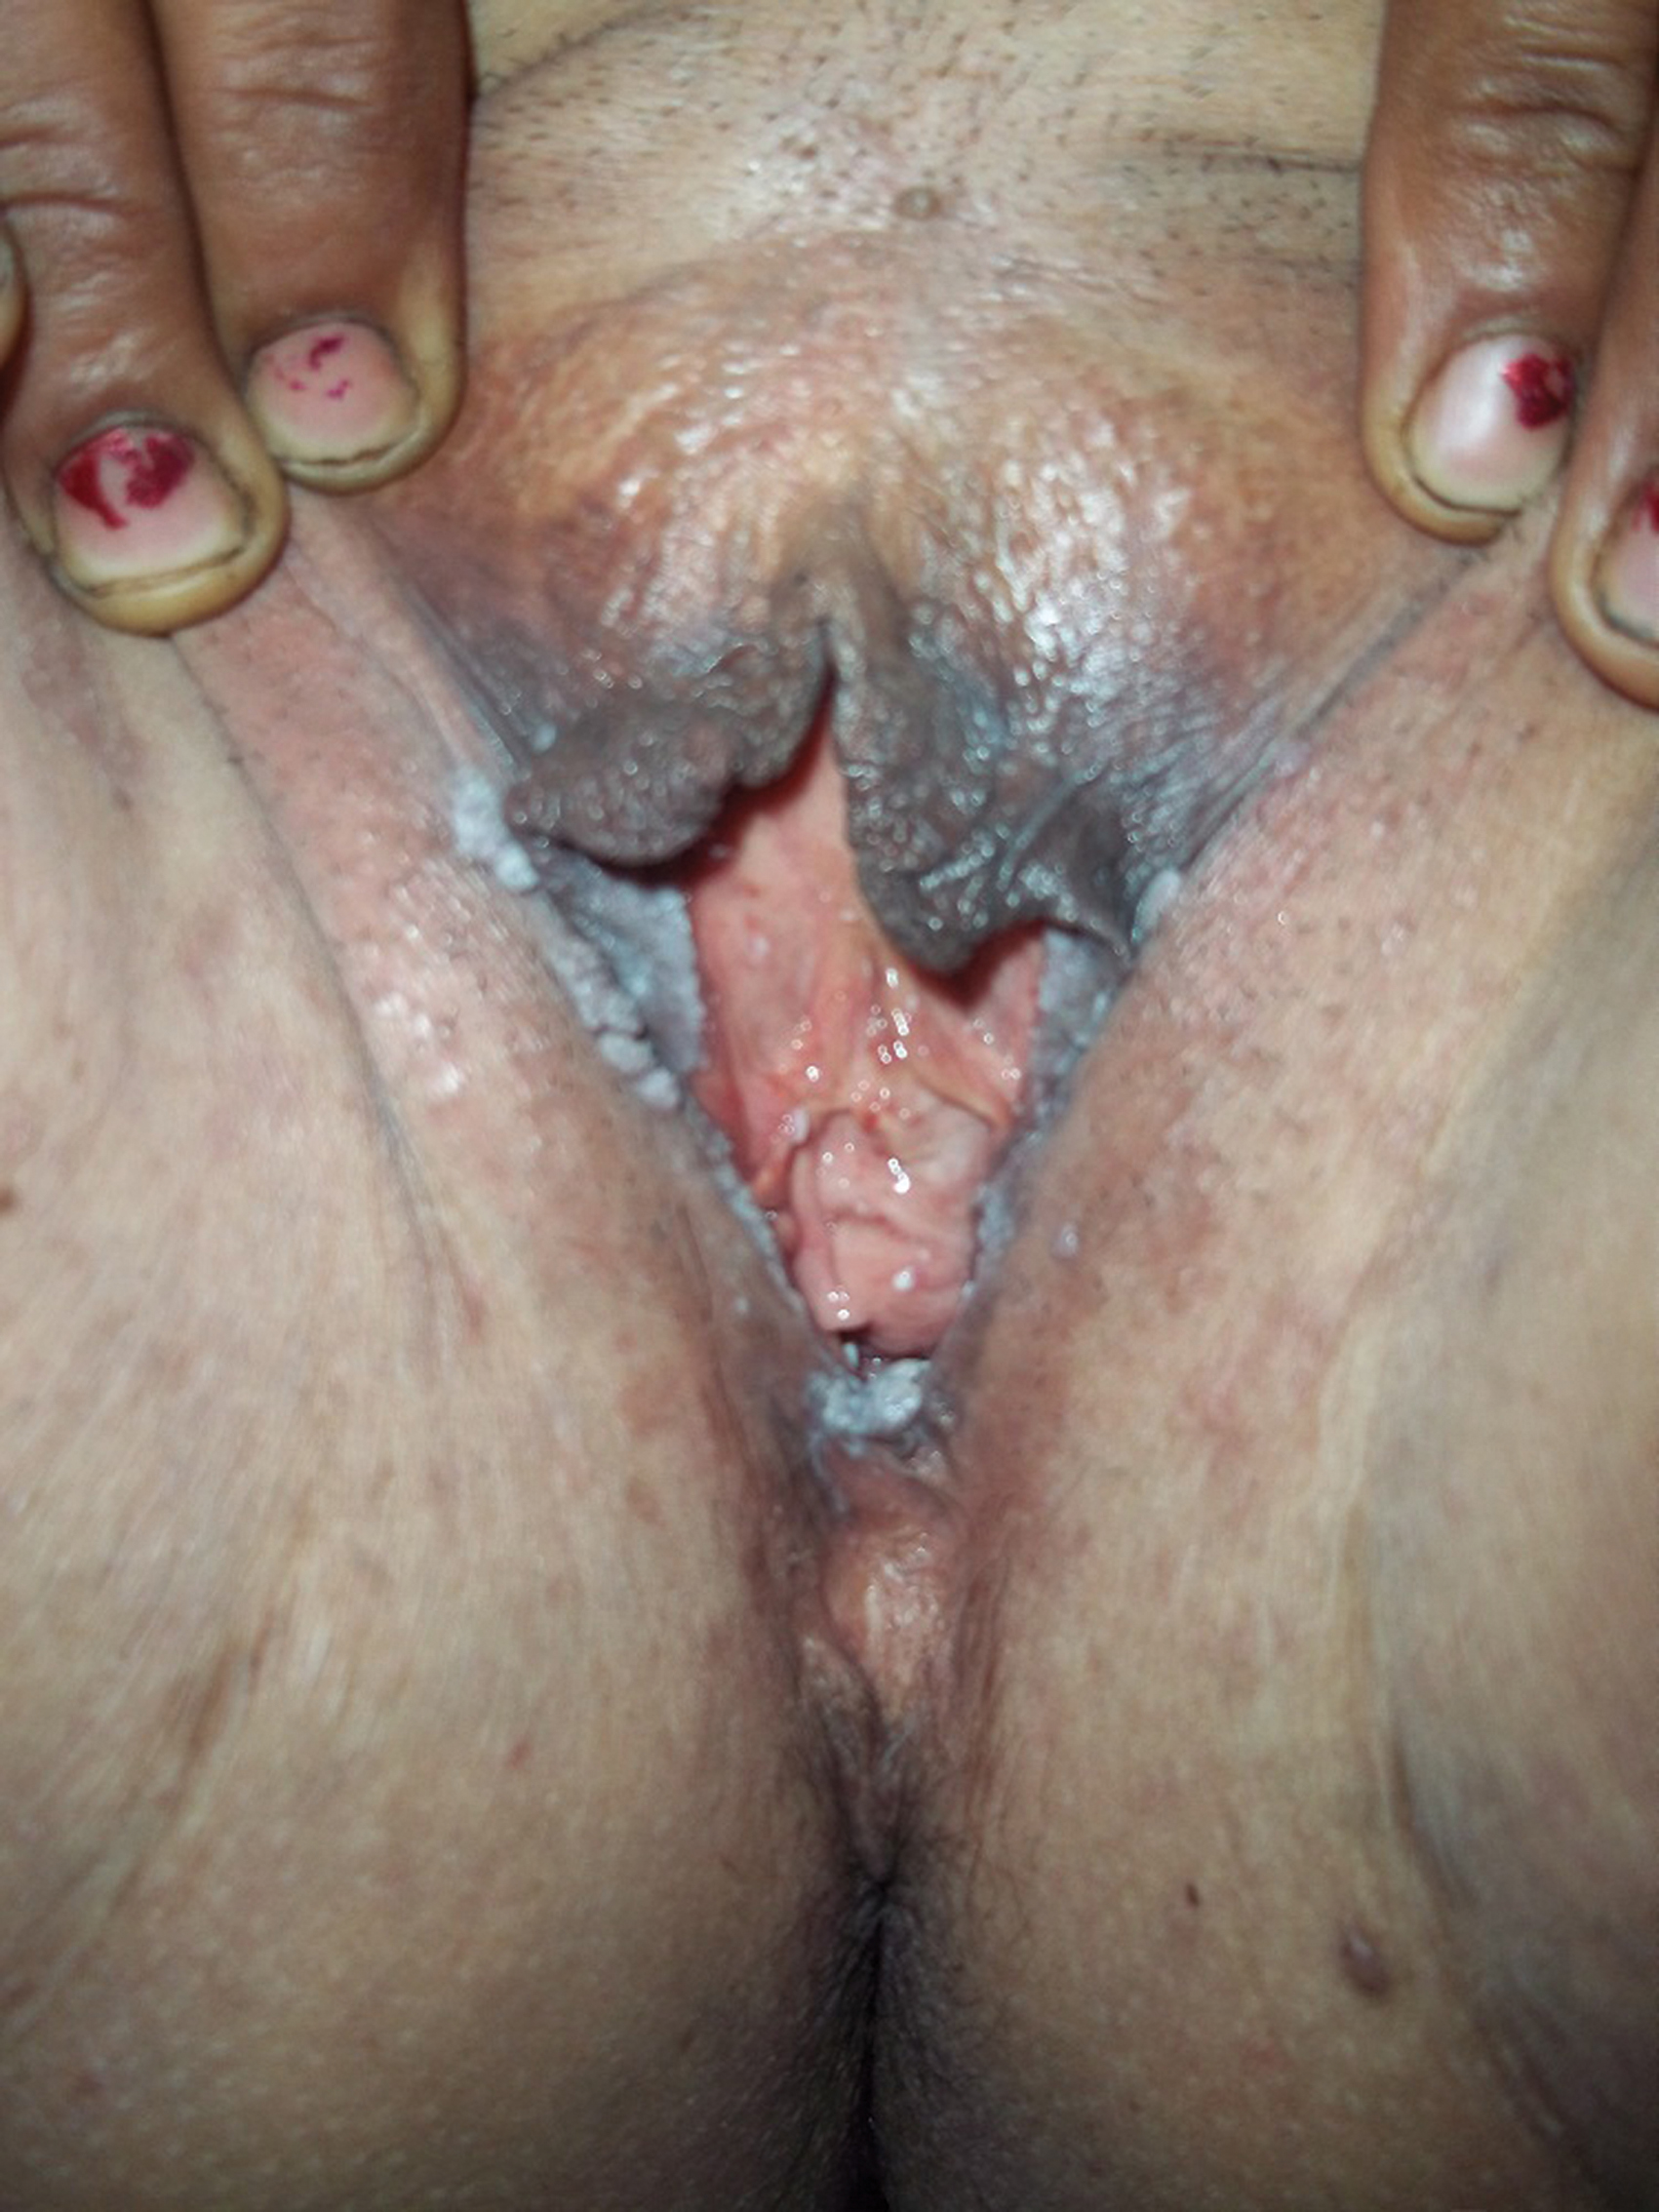 Dating a guy with genital warts